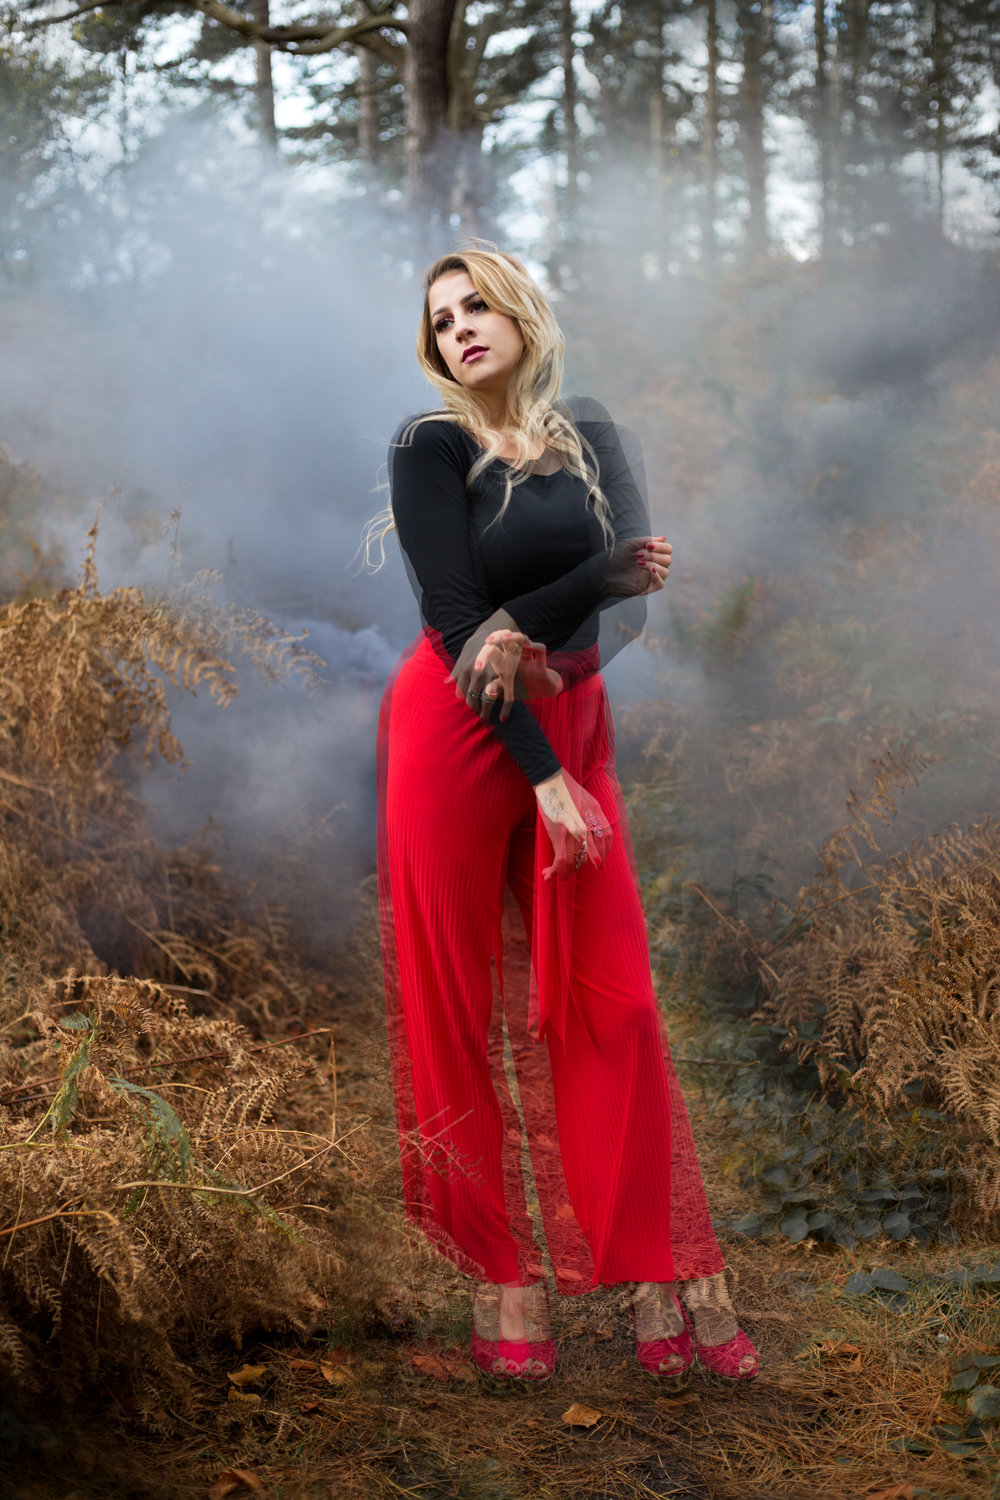 LEA-COOPER-PHOTOGRAPHY-WILLENHALL-WEST-MIDLANDS-WOLVERHAMPTON-PORTRAIT-MEGAN-REECE-RED-TROUSERS-SLOW-MOTION-SMOKE-BOMB.jpg